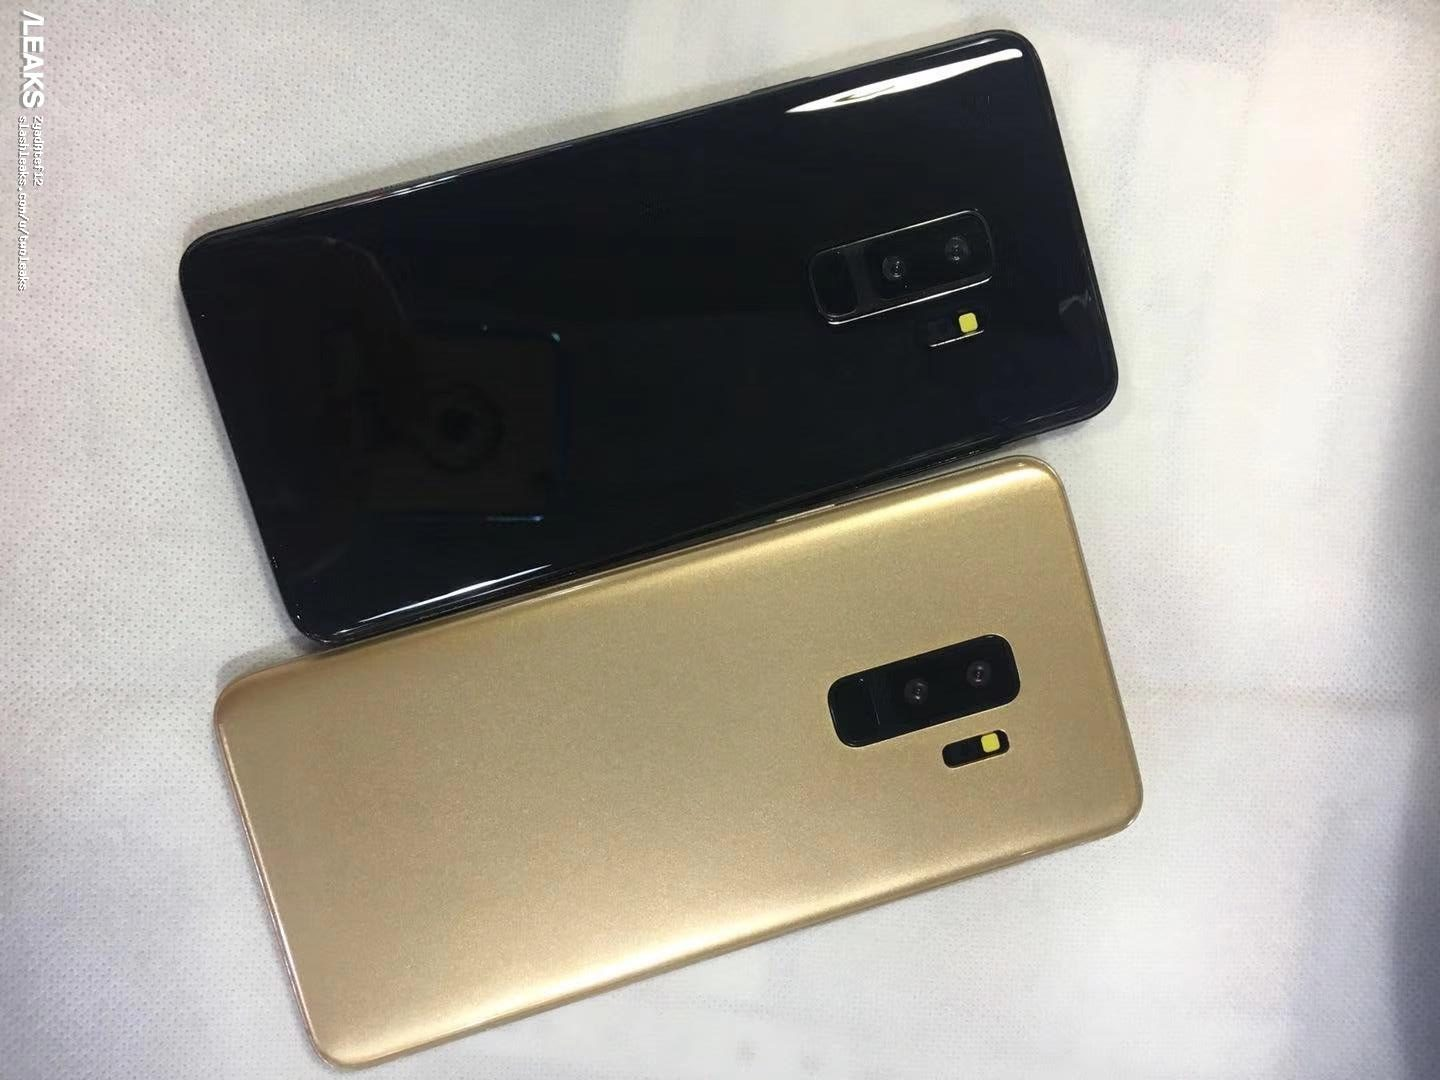 Cases of Galaxy S9 leaked affirming Samsung new design